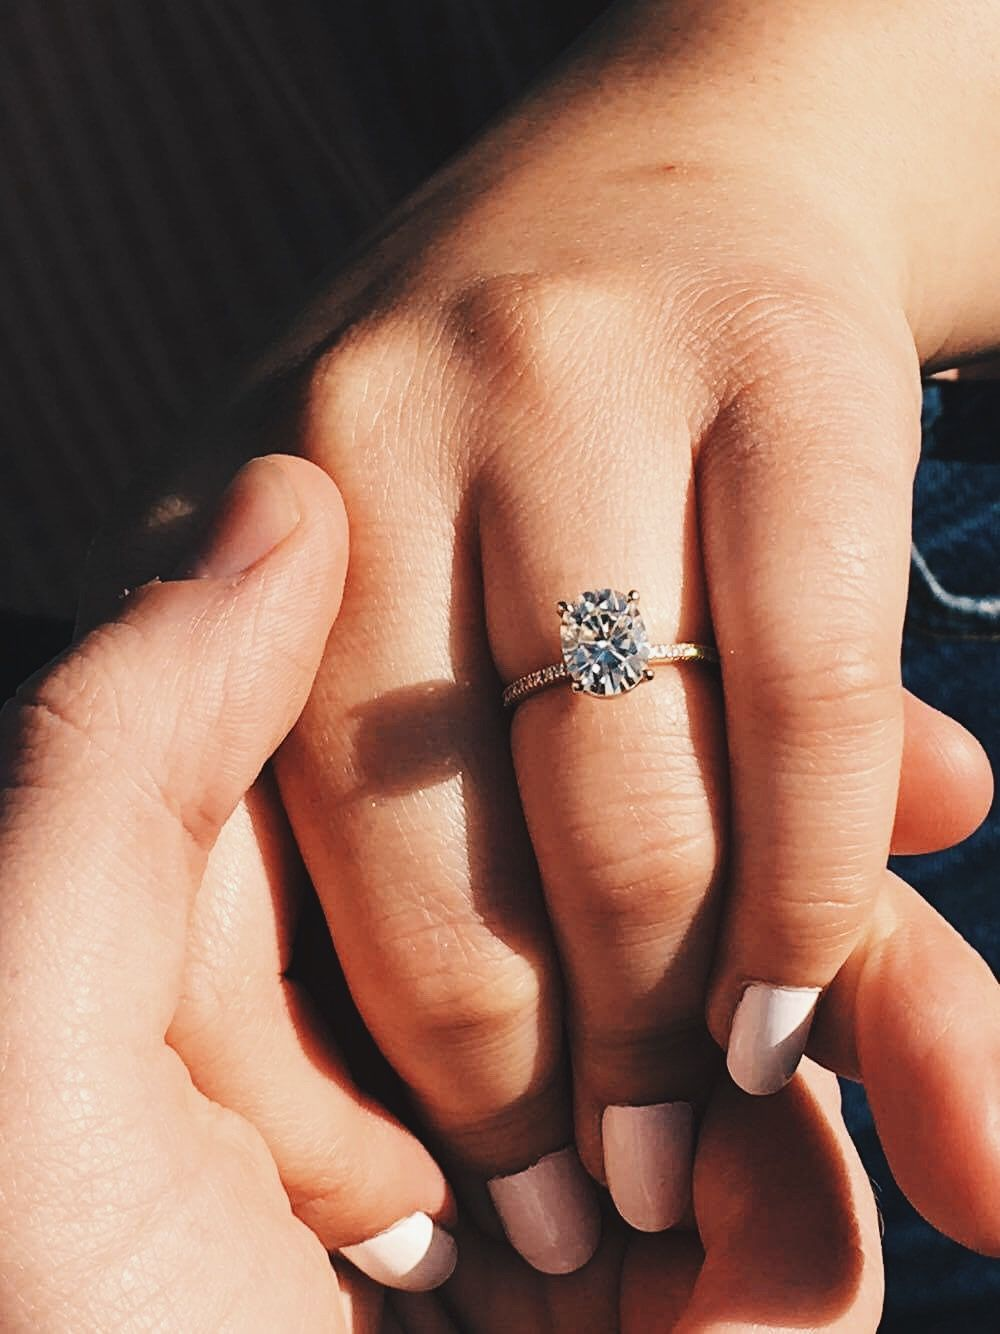 Love this pose to announce it but not my dream ring